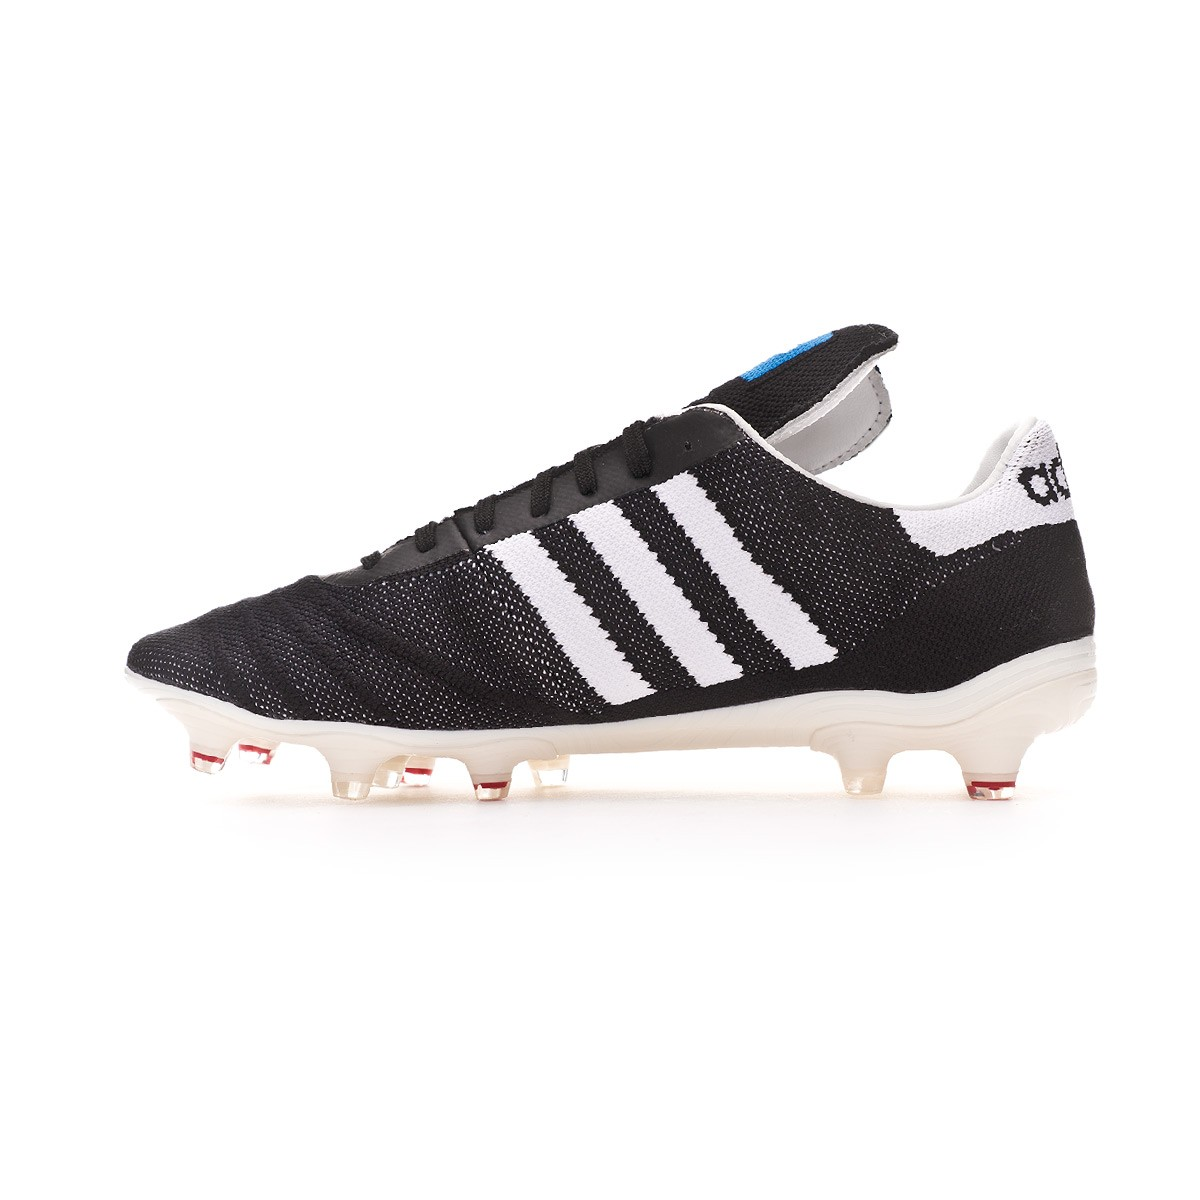 uk availability 28e9e 7e3bb Football Boots adidas Copa 70Y FG Core Black-White-Red - Football store  Fútbol Emotion